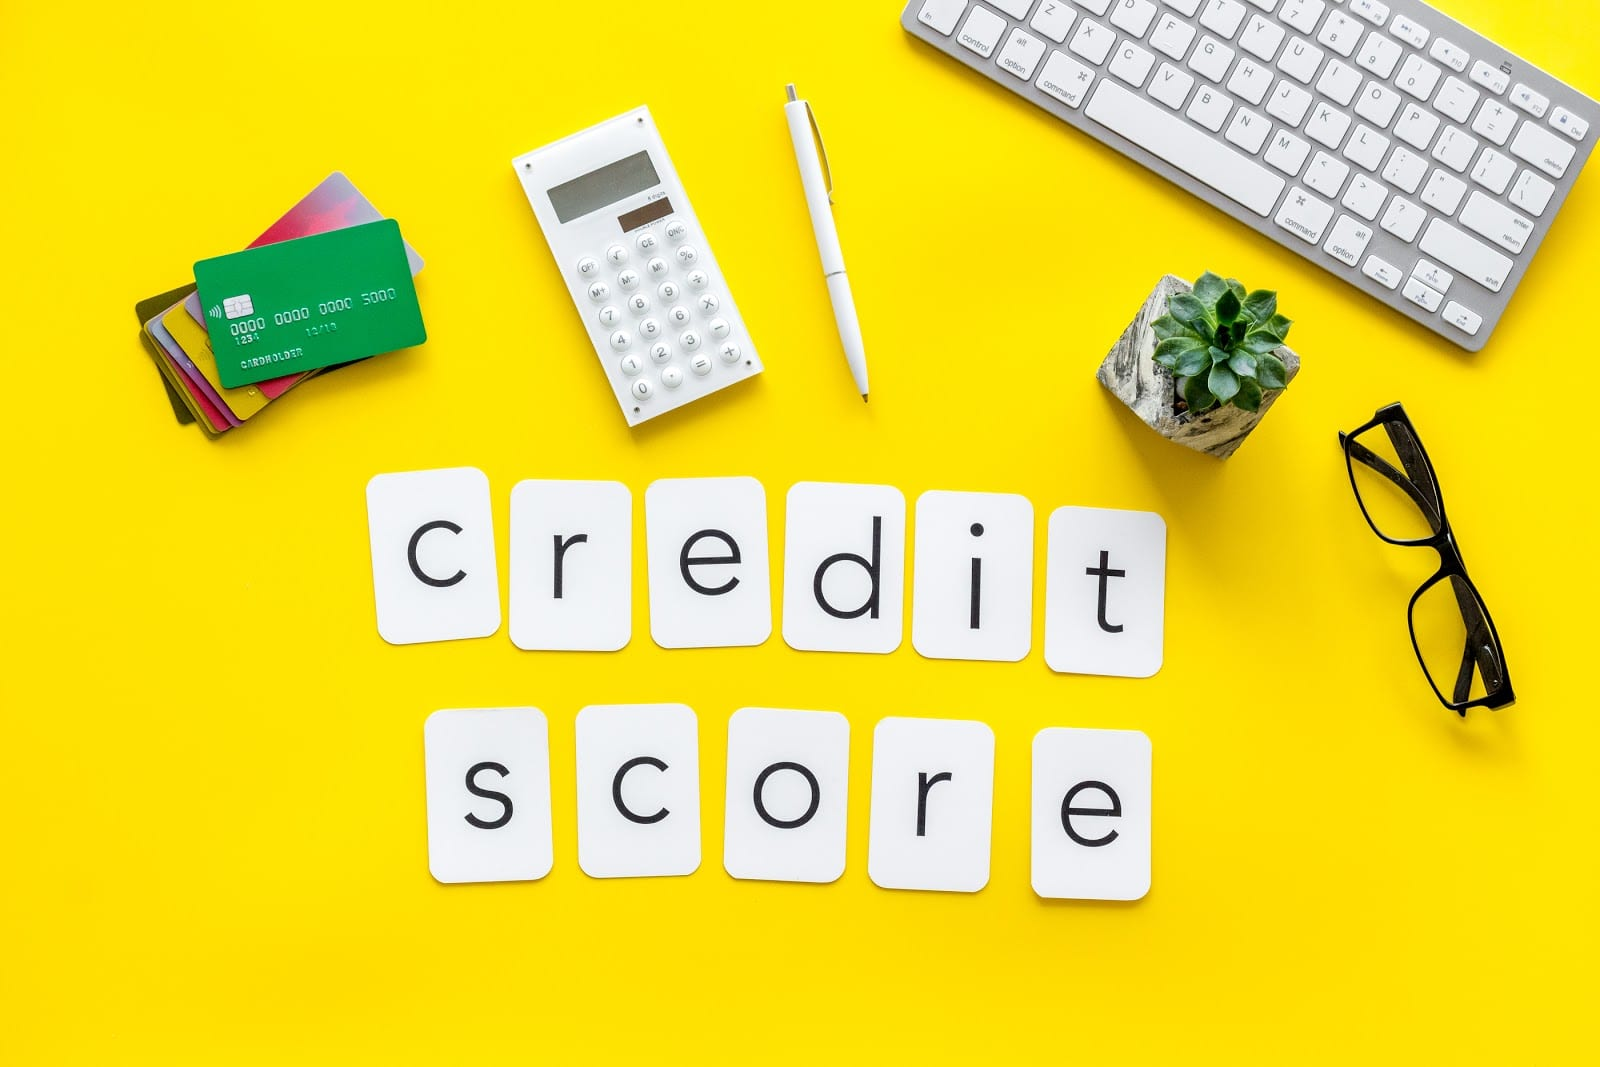 Credit-Score-for-bankruptcy-debt-settlement